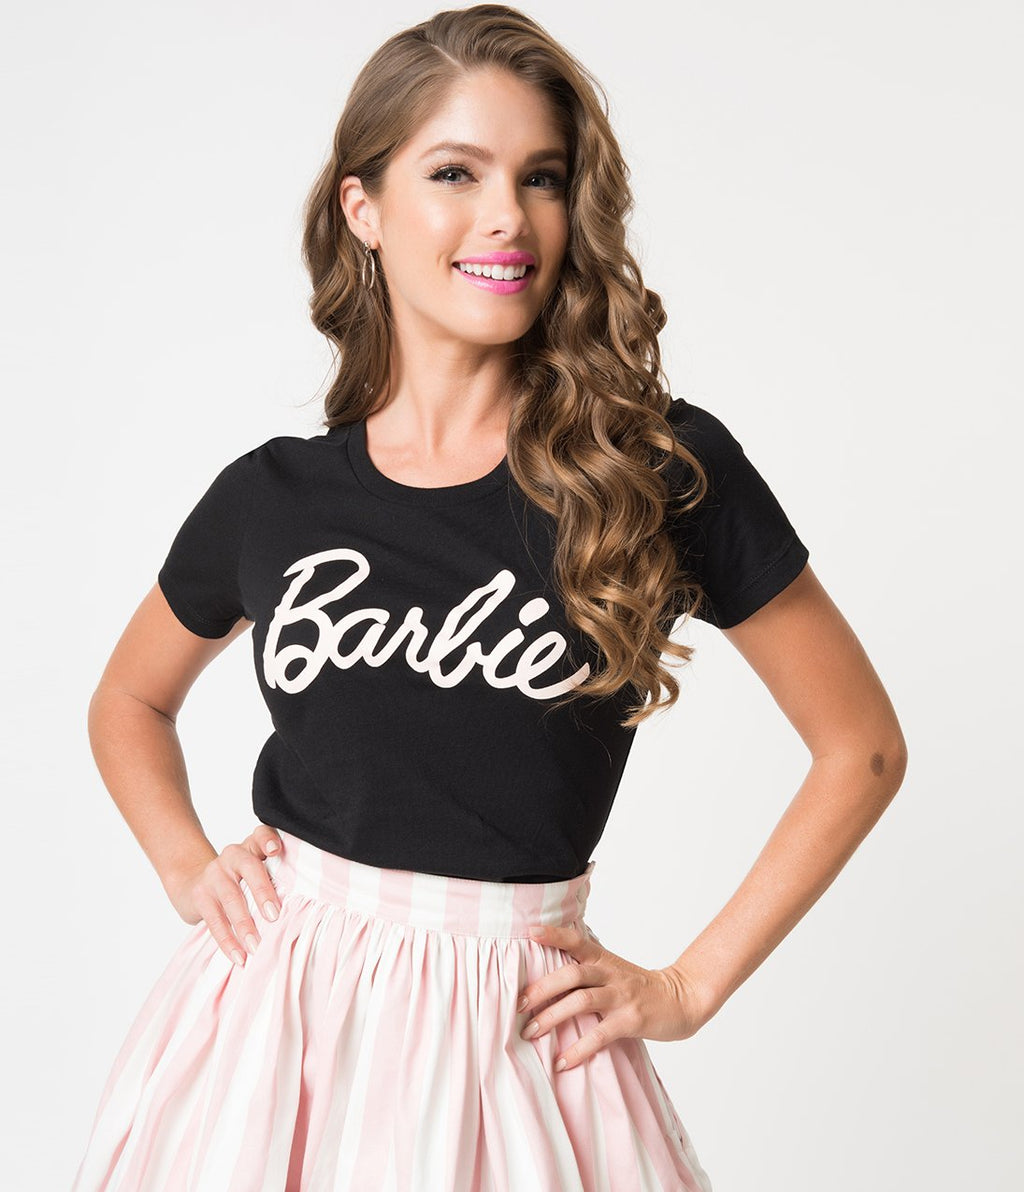 Barbie x Unique Vintage Black Barbie Logo Women's Tee - Natasha Marie Clothing